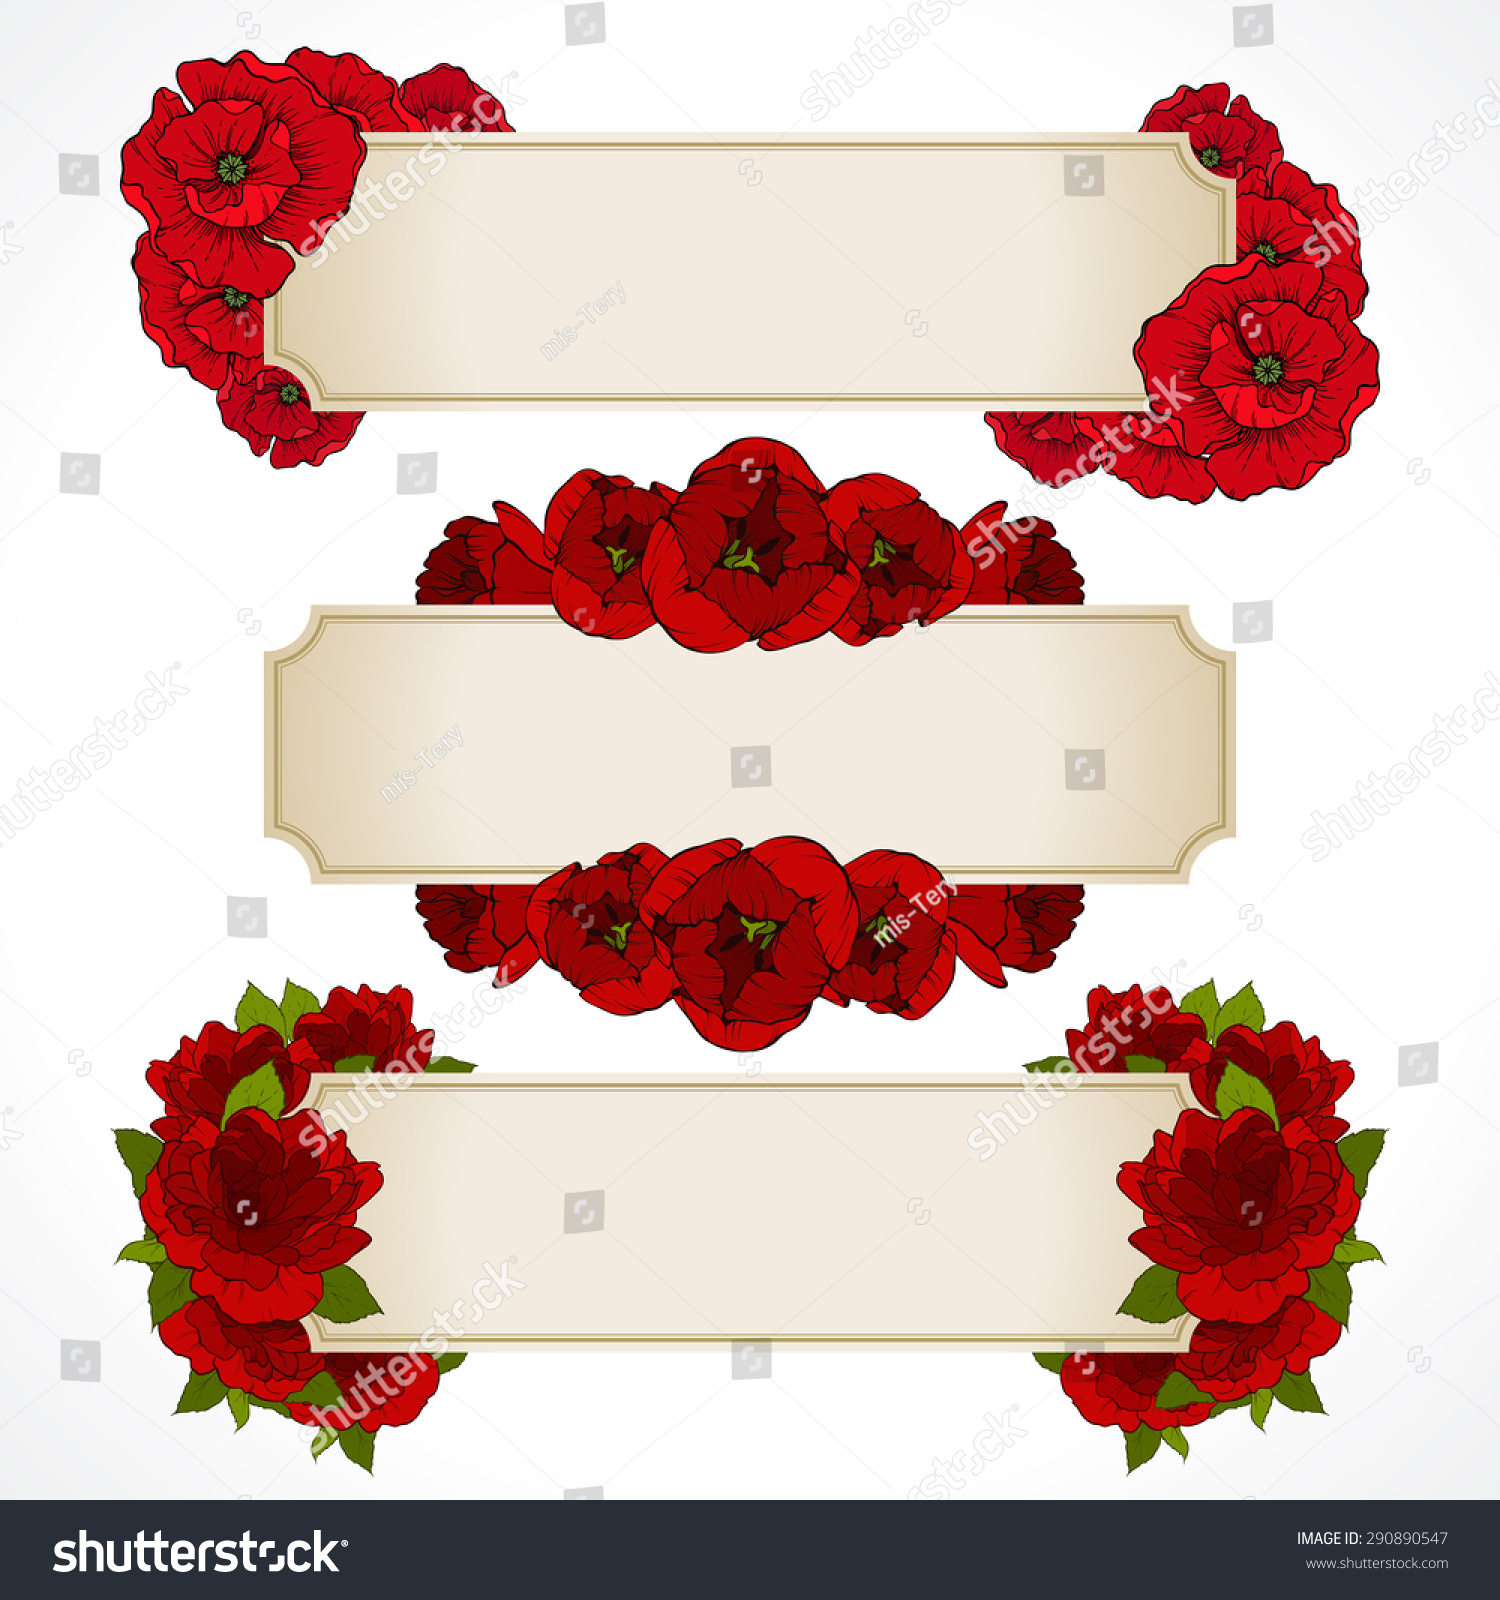 Vector Set Banners Red Flowers Greeting Stock Vector (Royalty Free ...